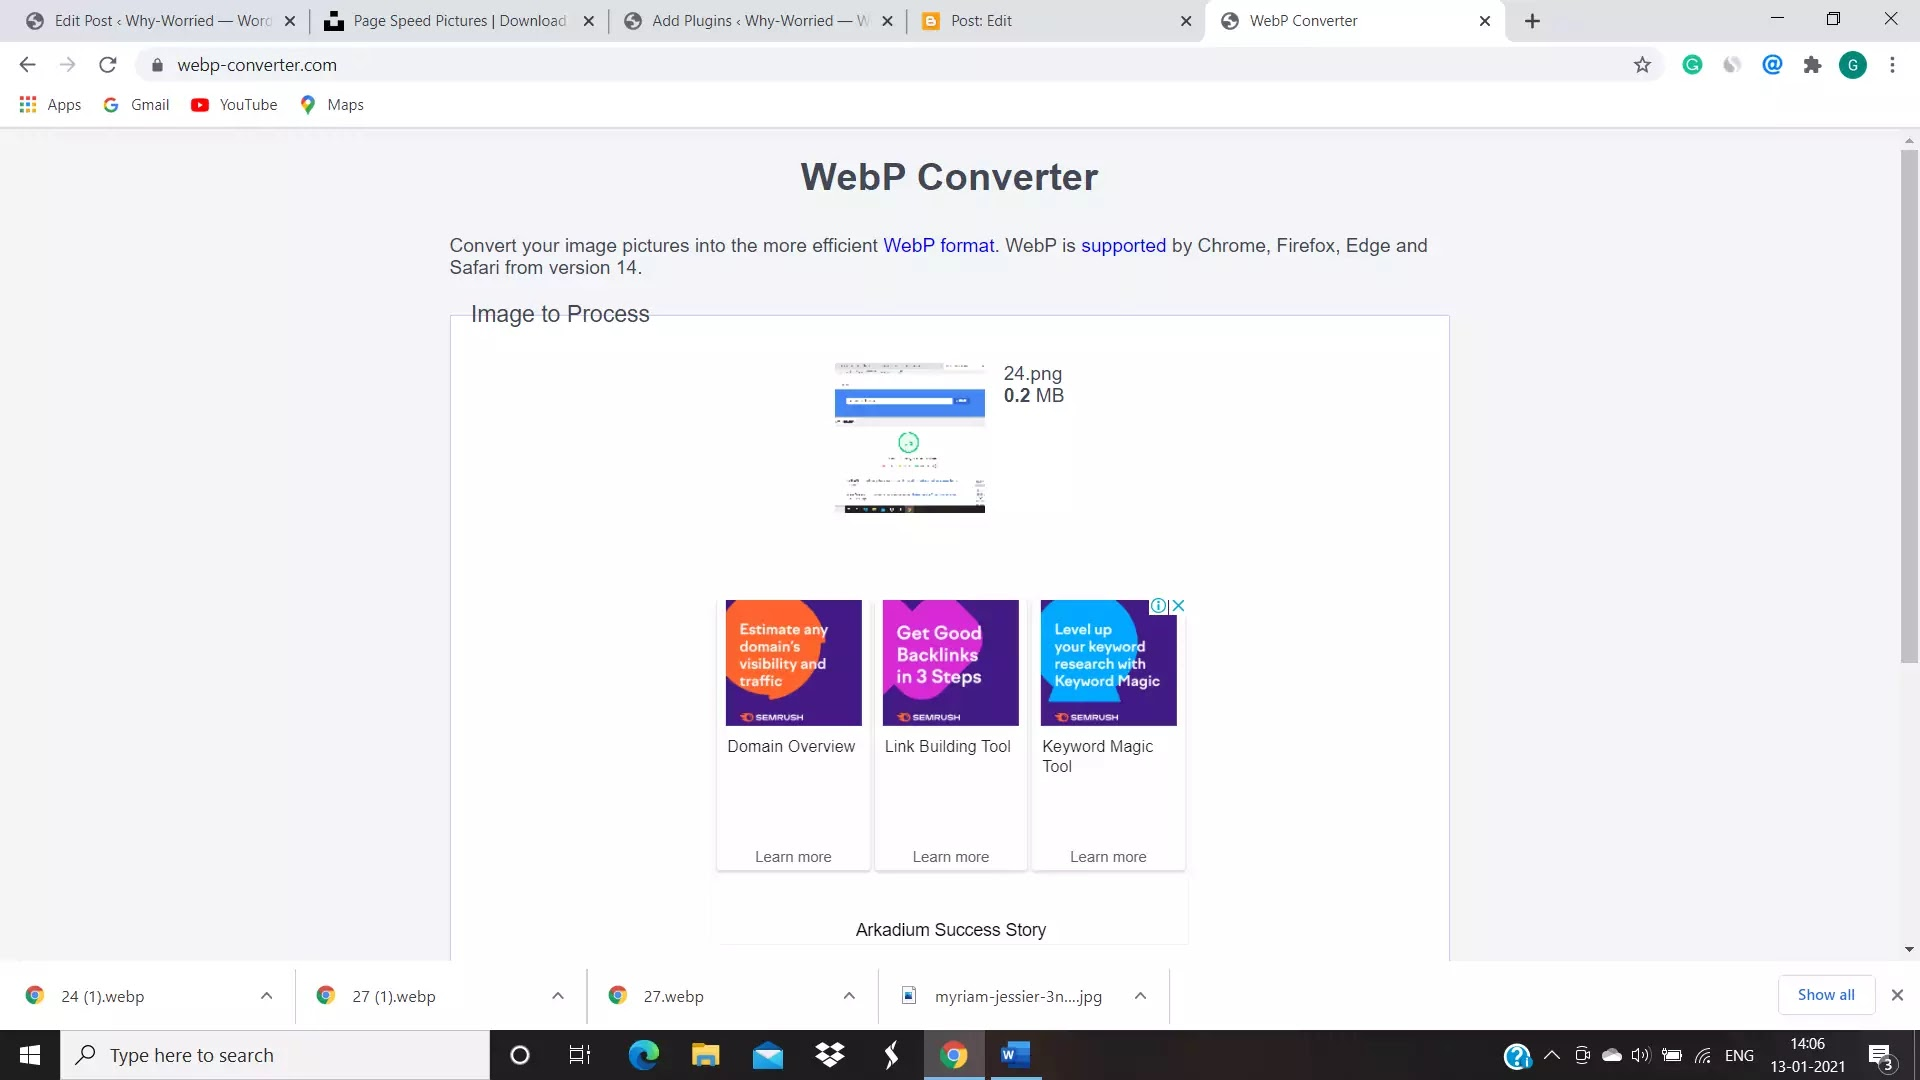 screen shot of Webp converter home page